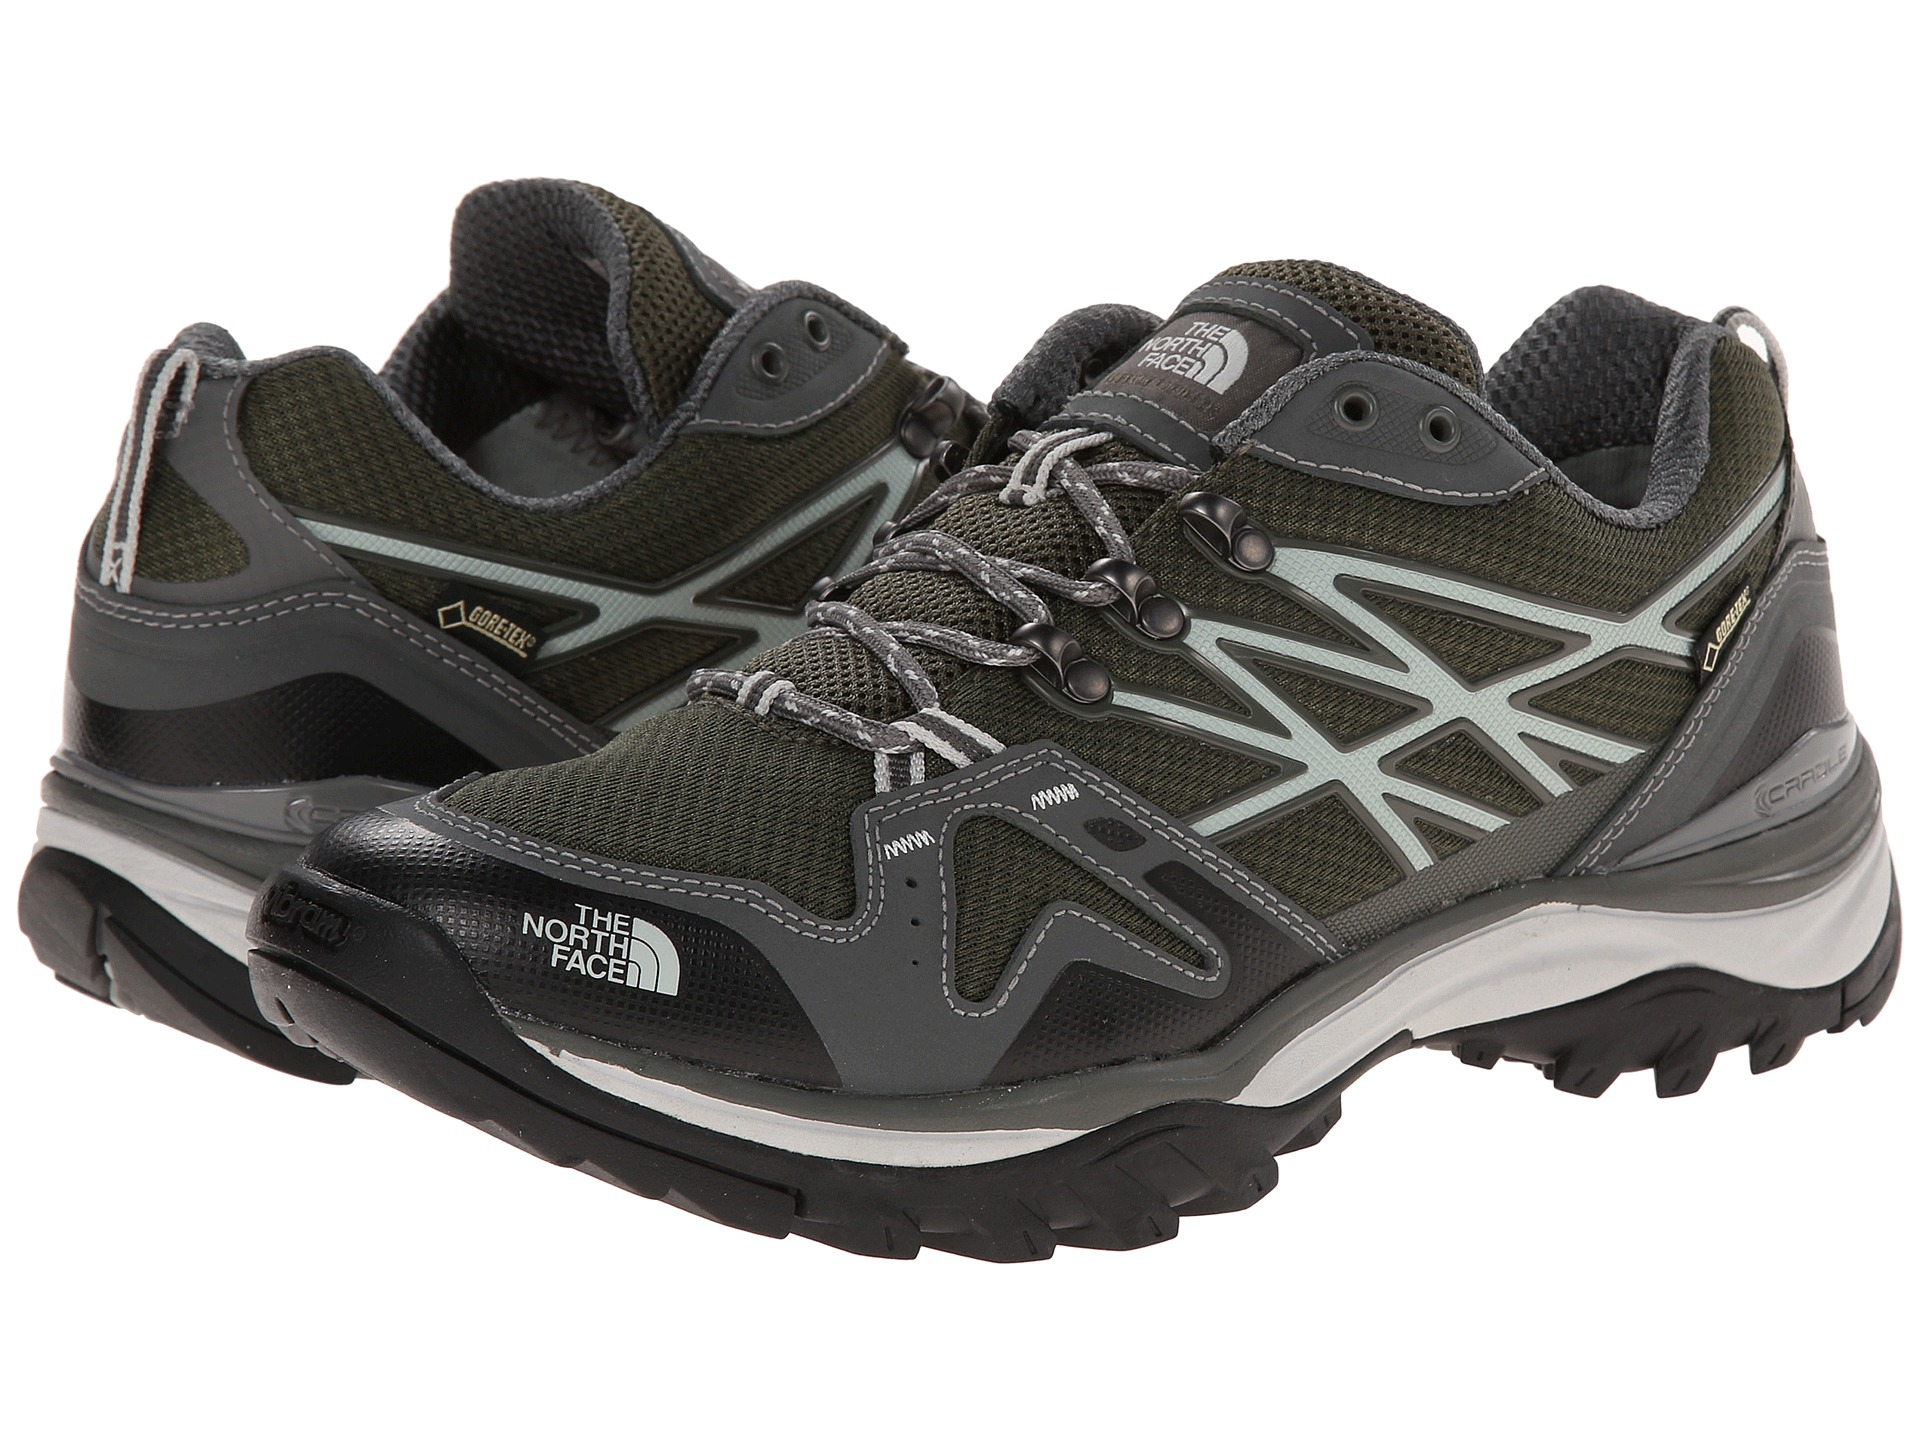 Awesome North Face Hiking Shoes (Men) Image